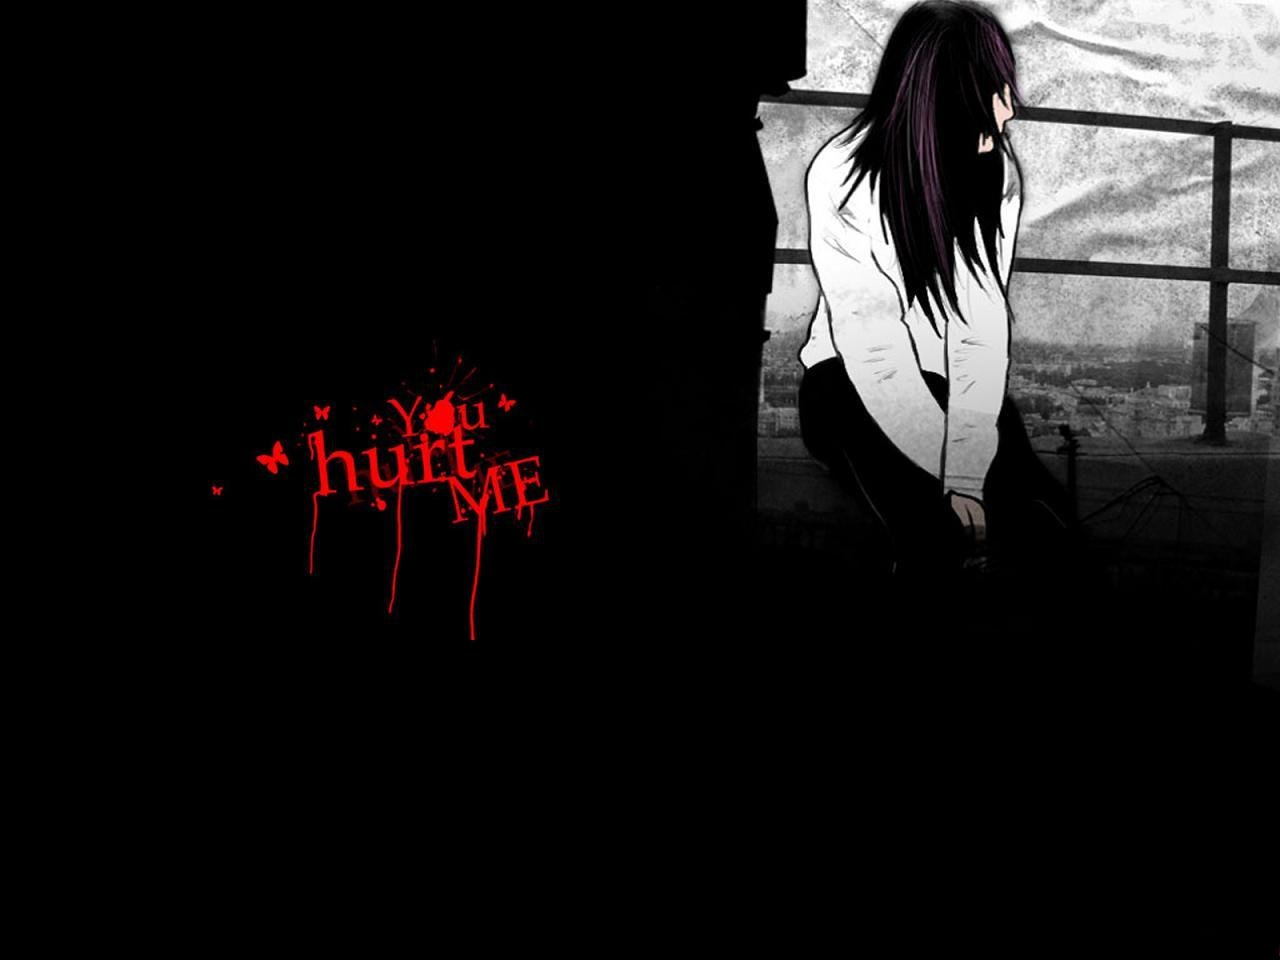 Wallpapers Pictures Photos Sad Emo Girl In Love Pictures 1280x960